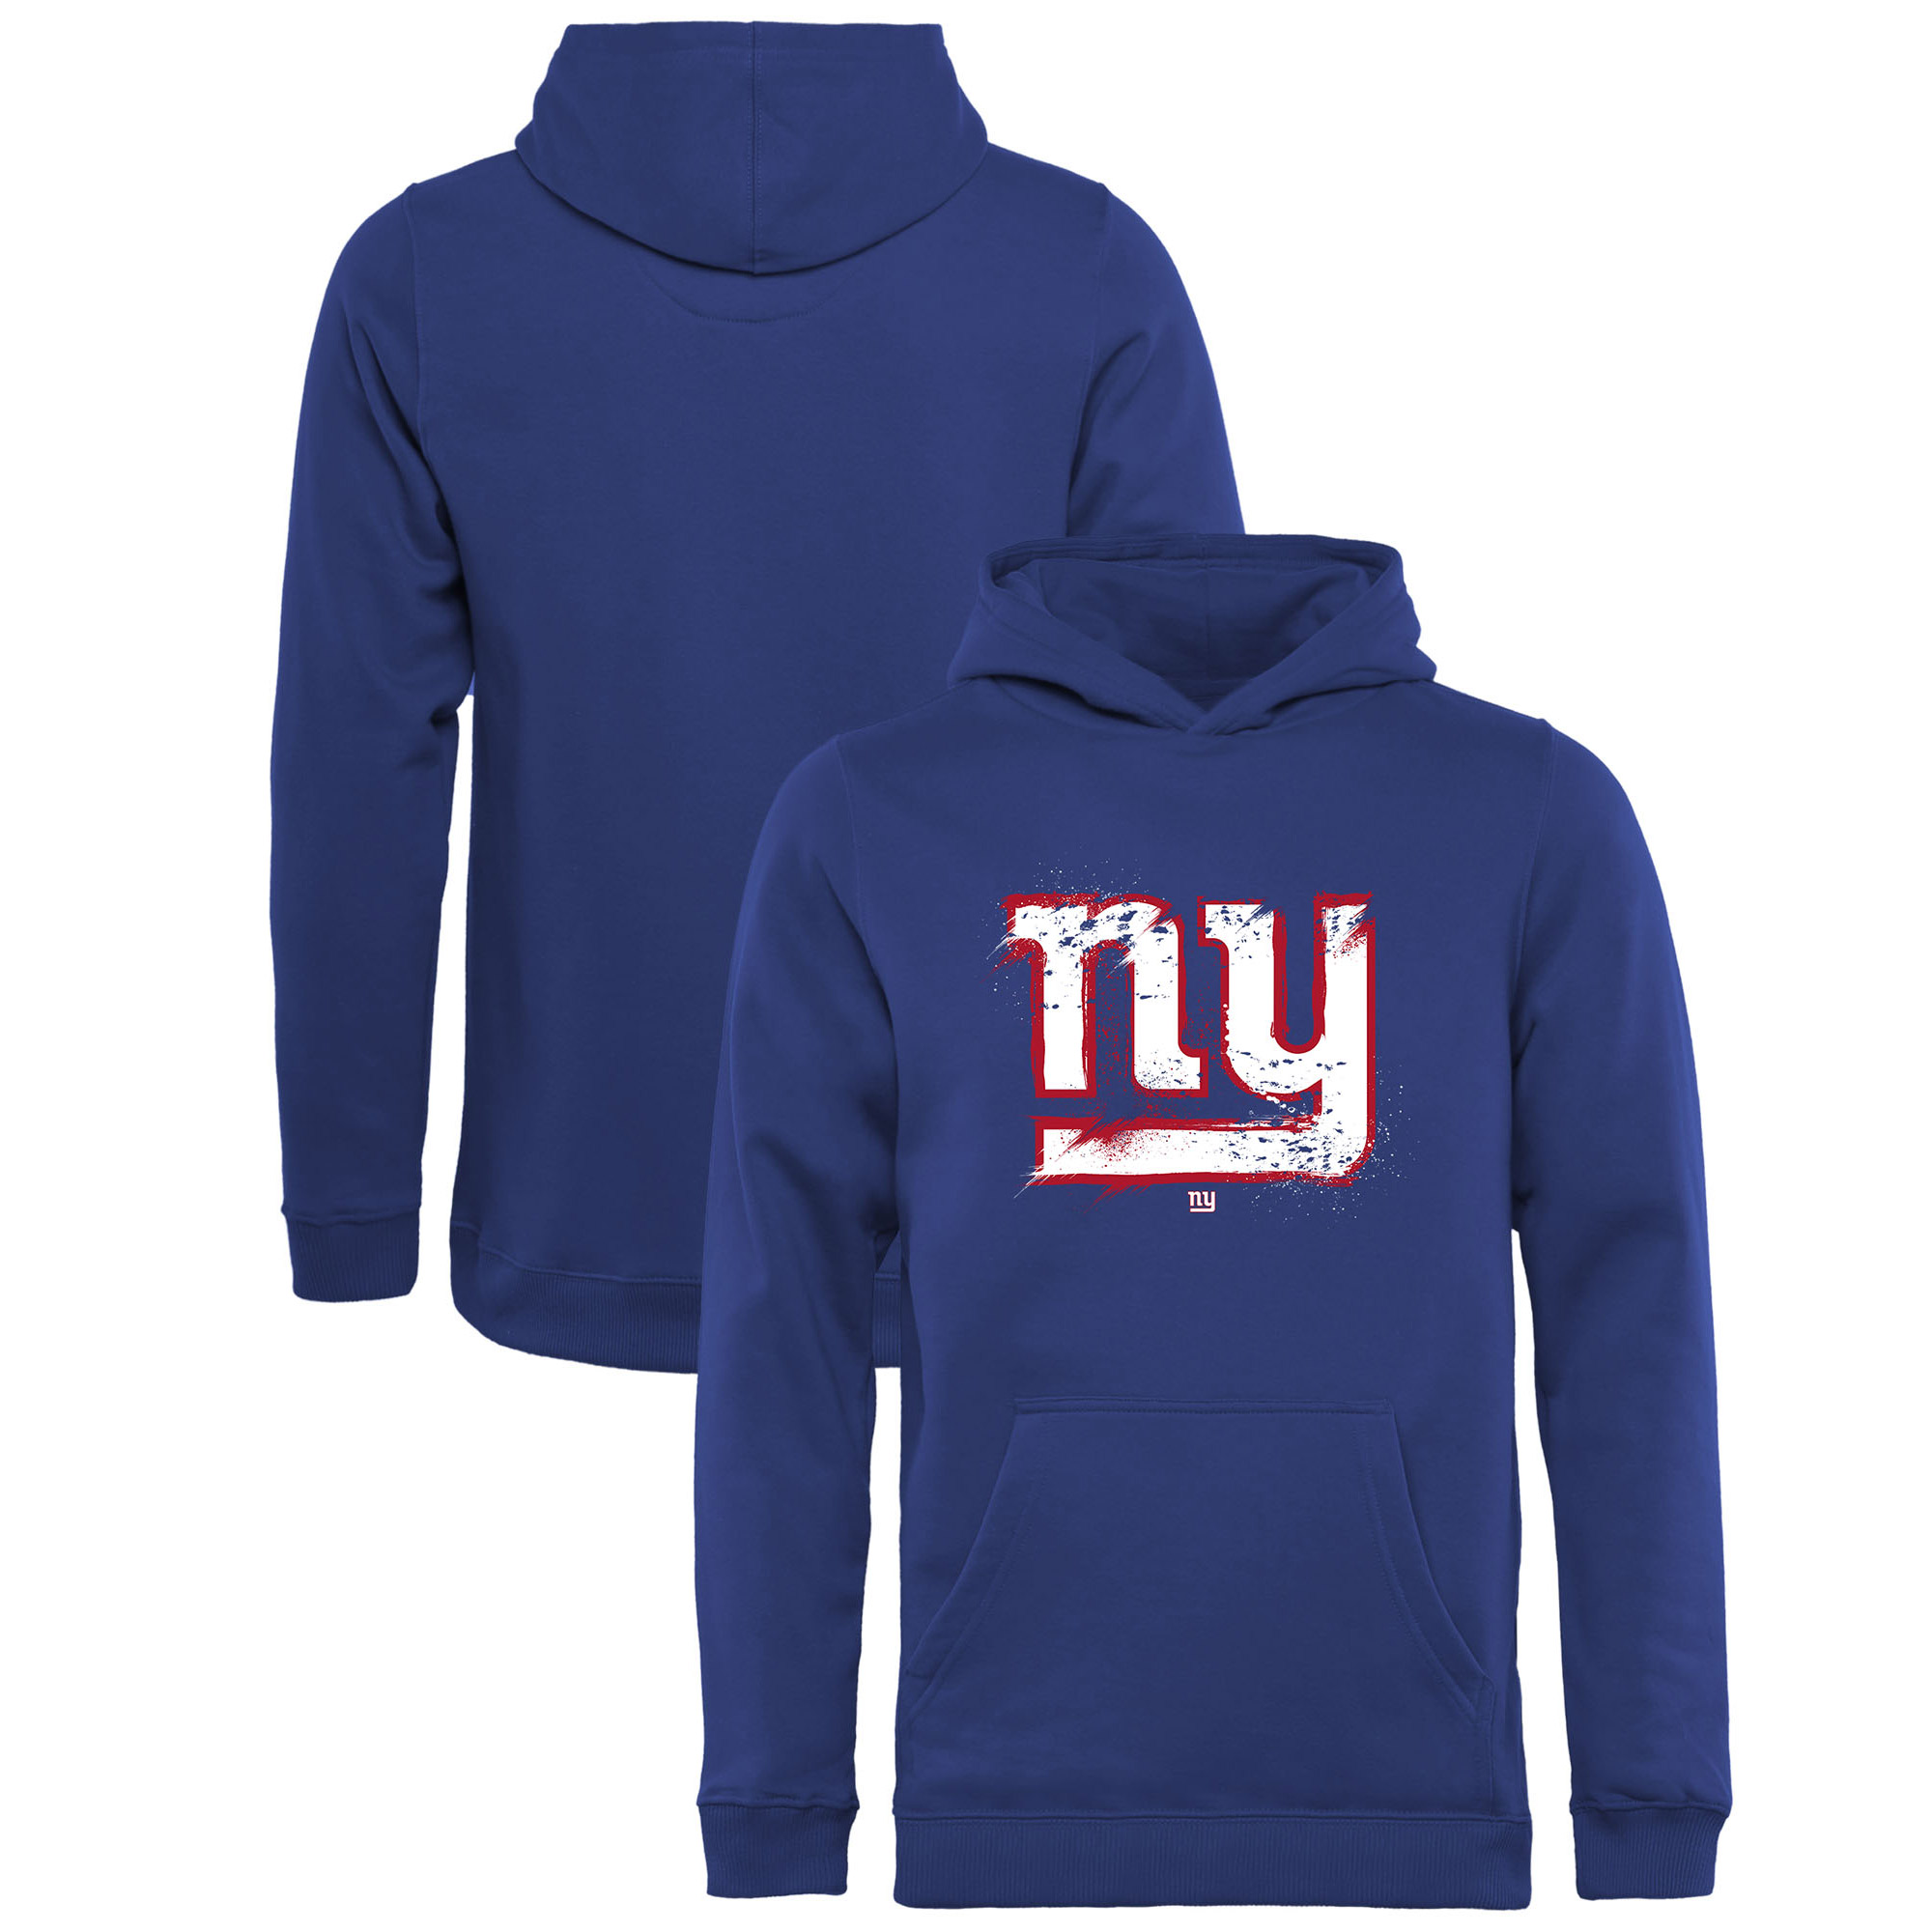 New York Giants NFL Pro Line by Fanatics Branded Youth Splatter Logo Pullover Hoodie - Royal